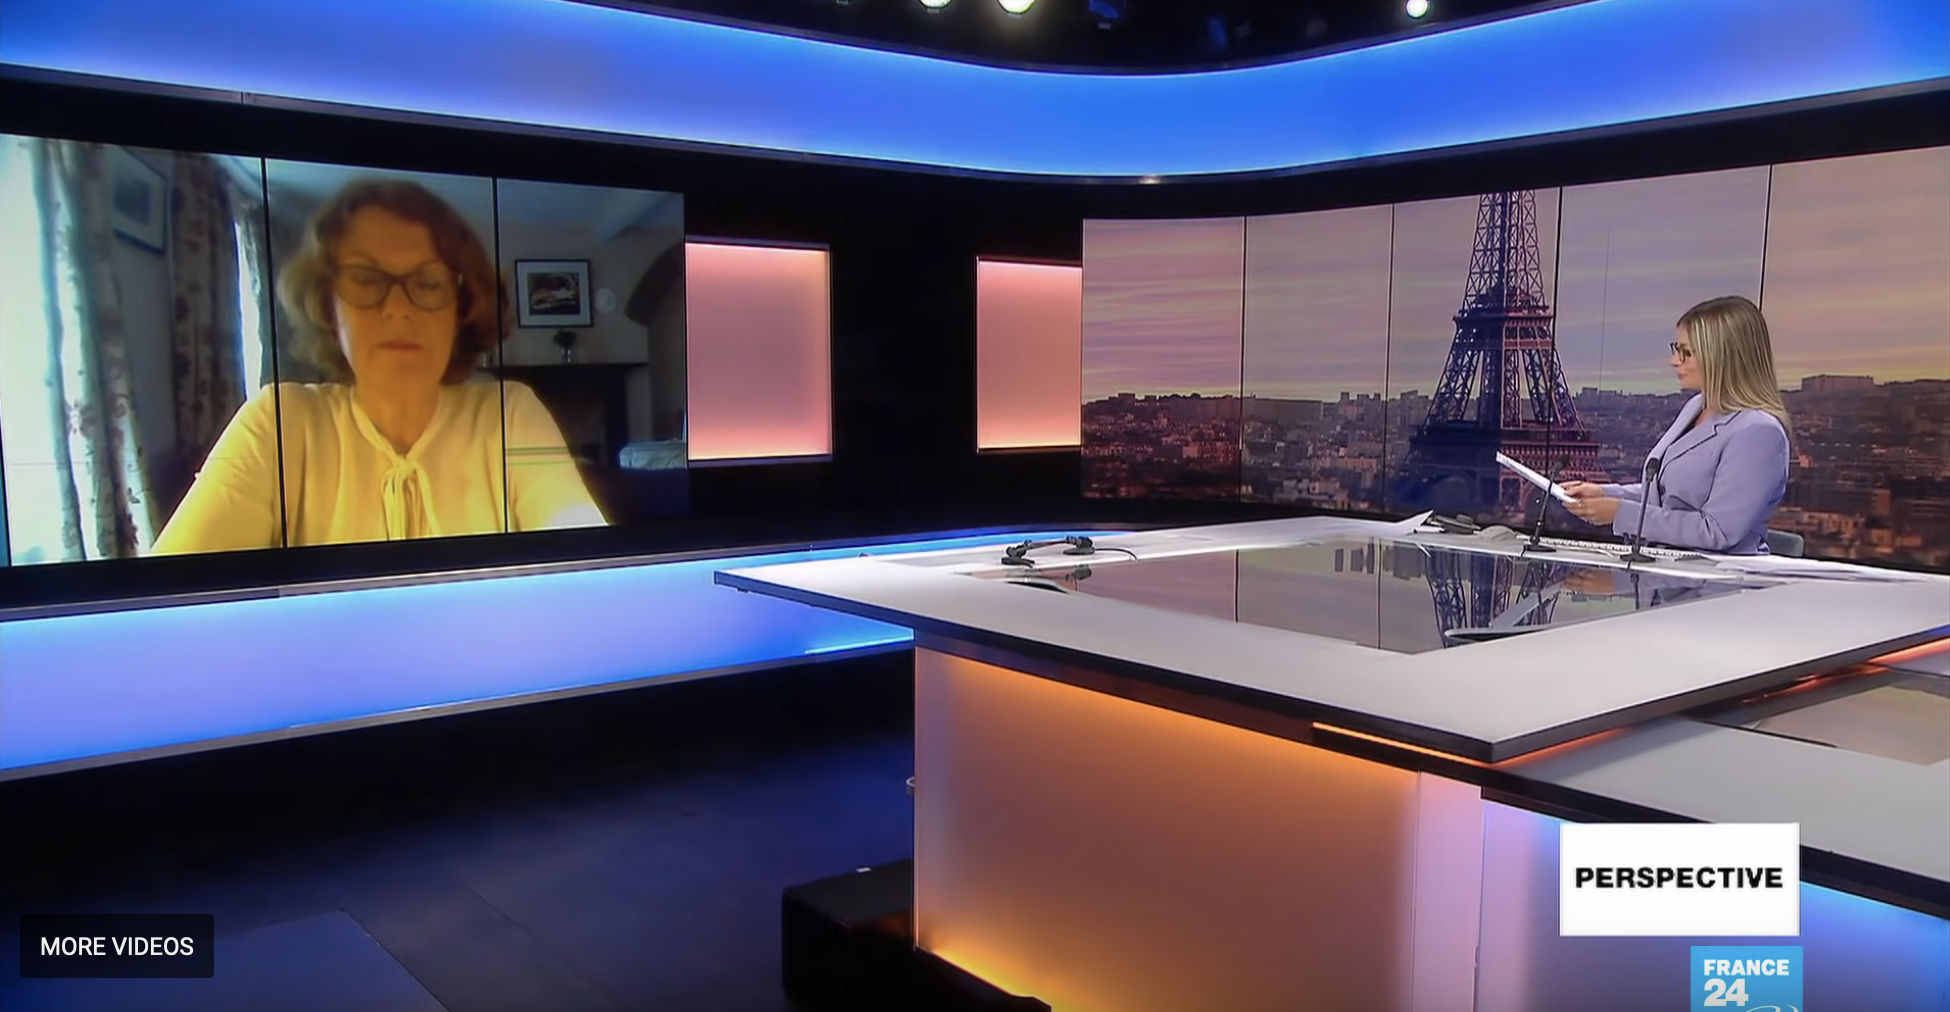 Susan McKay on Perspective, France 24